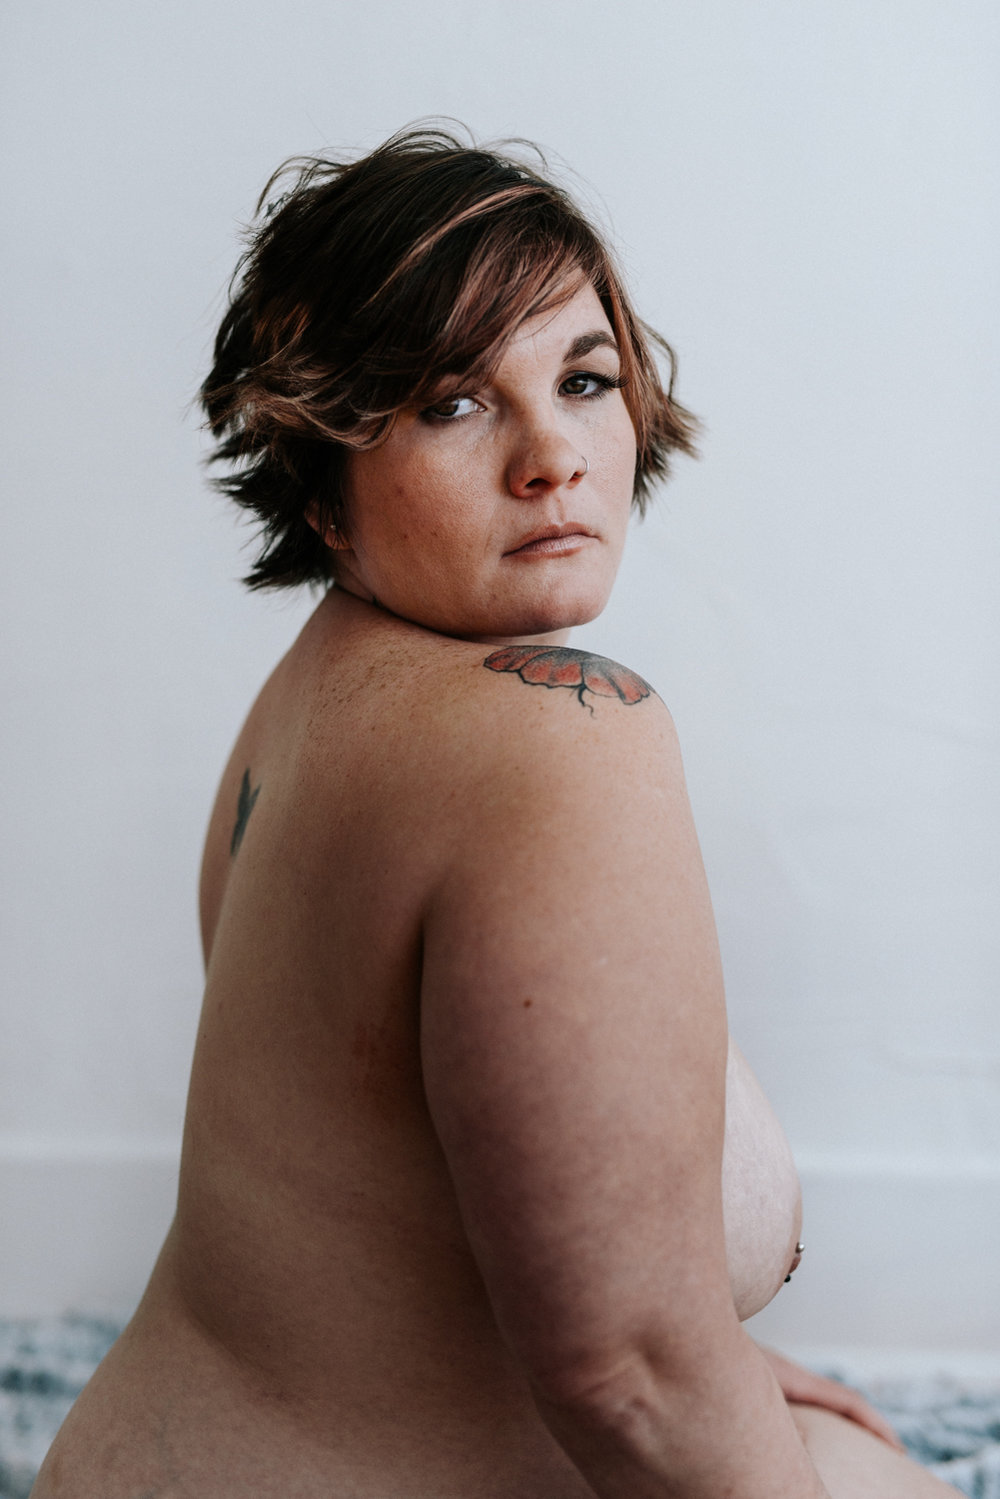 woman-from-side-looking-over-shoulder-at-camera-nude-boudoir-34©_Elisabeth-Waller.jpg